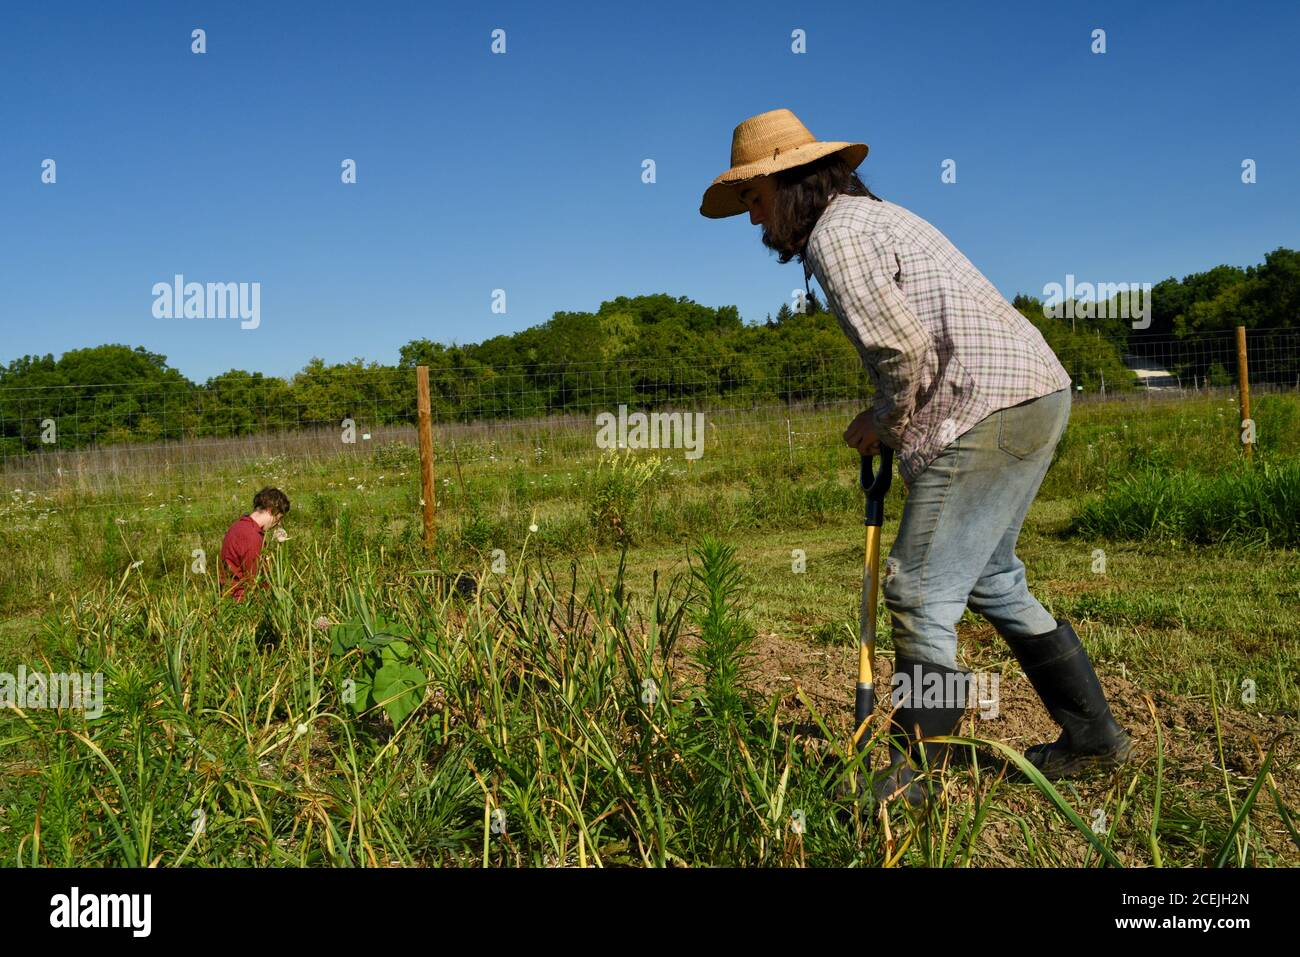 Two women farmers digging up and harvesting organic garlic bulbs in growing fields on a sunny day with blue sky, at a small farm in Decorah, Iowa, USA Stock Photo